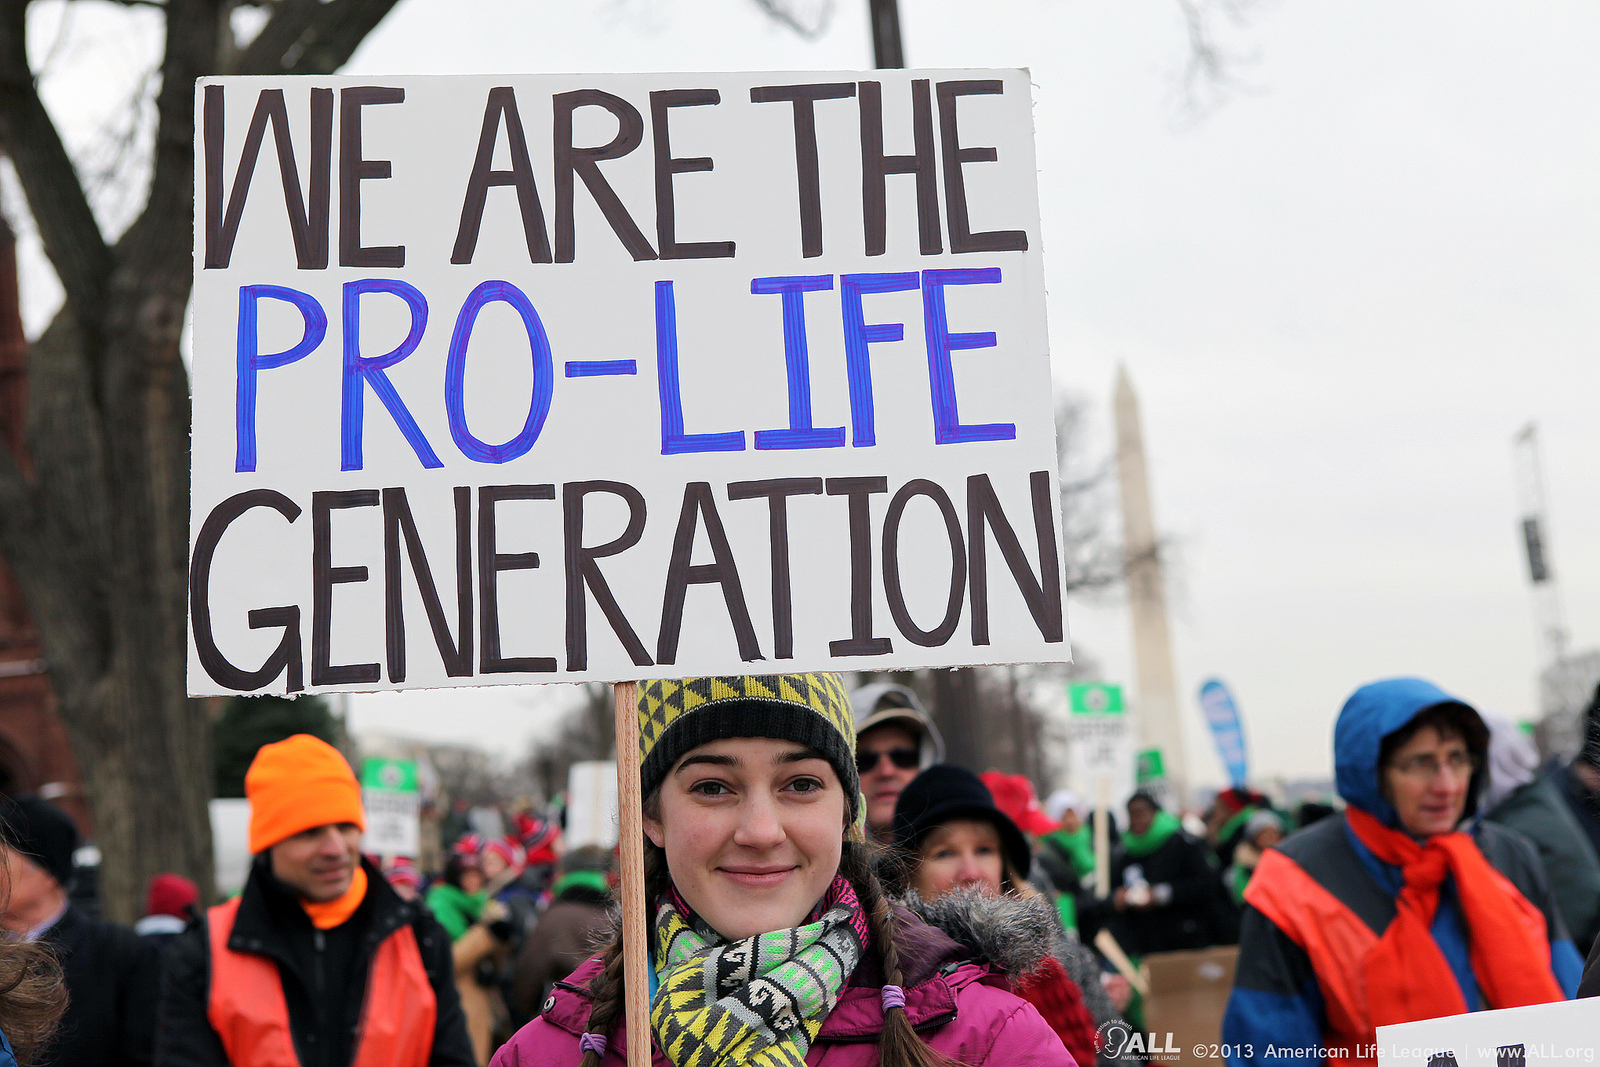 abortion pro life vs pro choice essay 3265 words abortion pro choice or pro life essay reviewessayscom